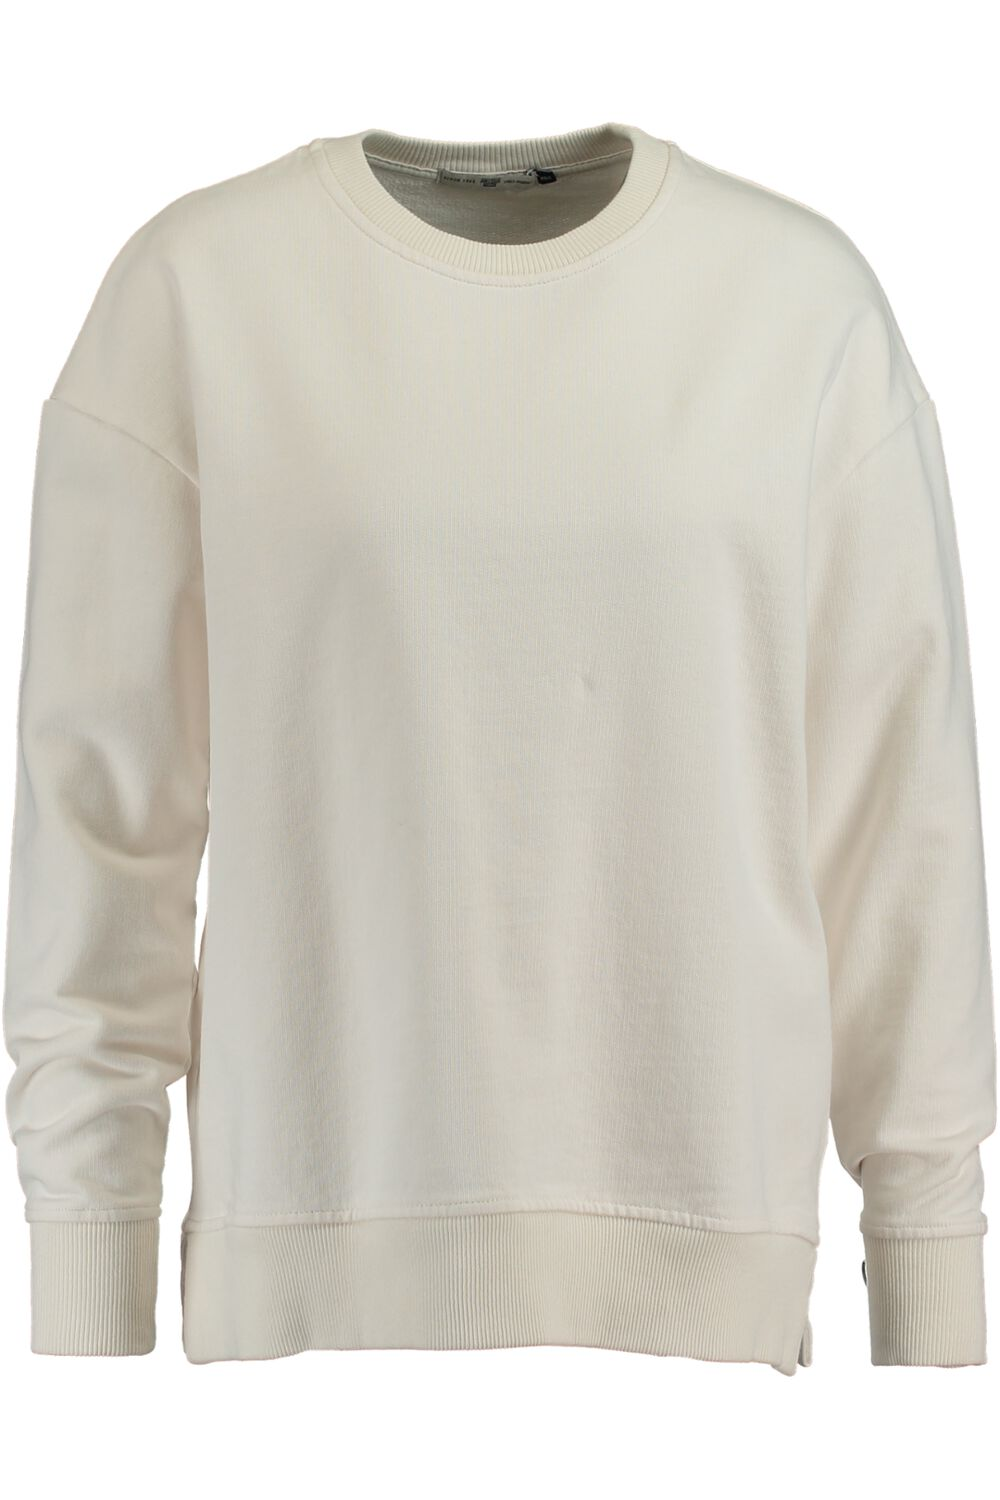 America Today Dames Sweater San Wit